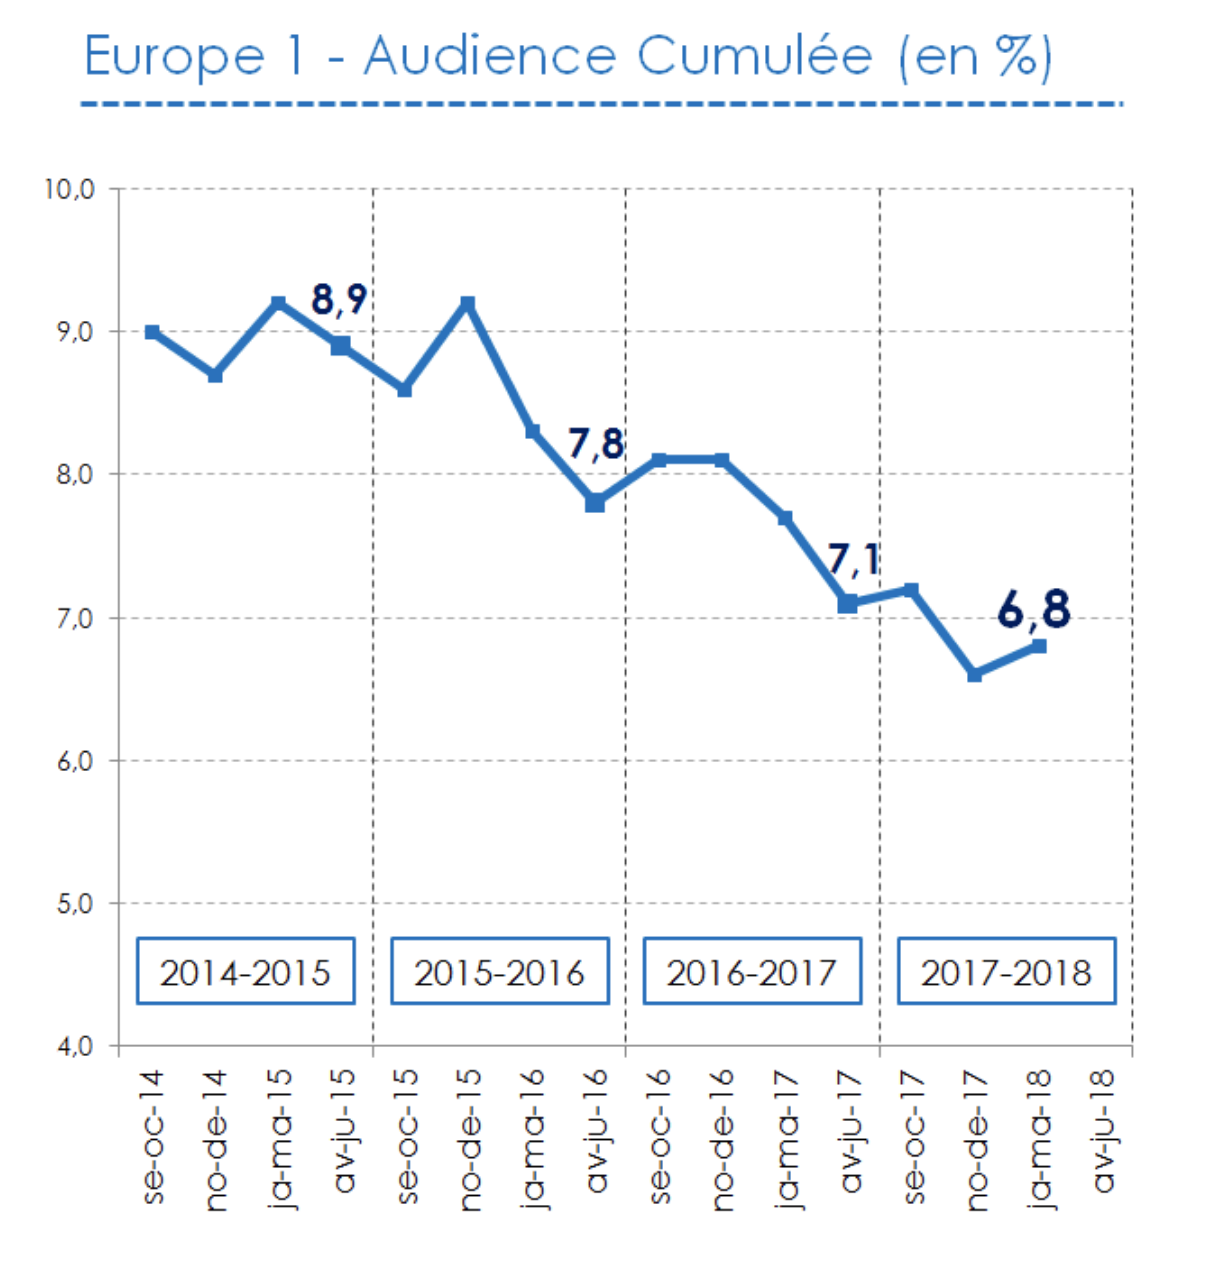 L'audience cumulée d'Europe 1